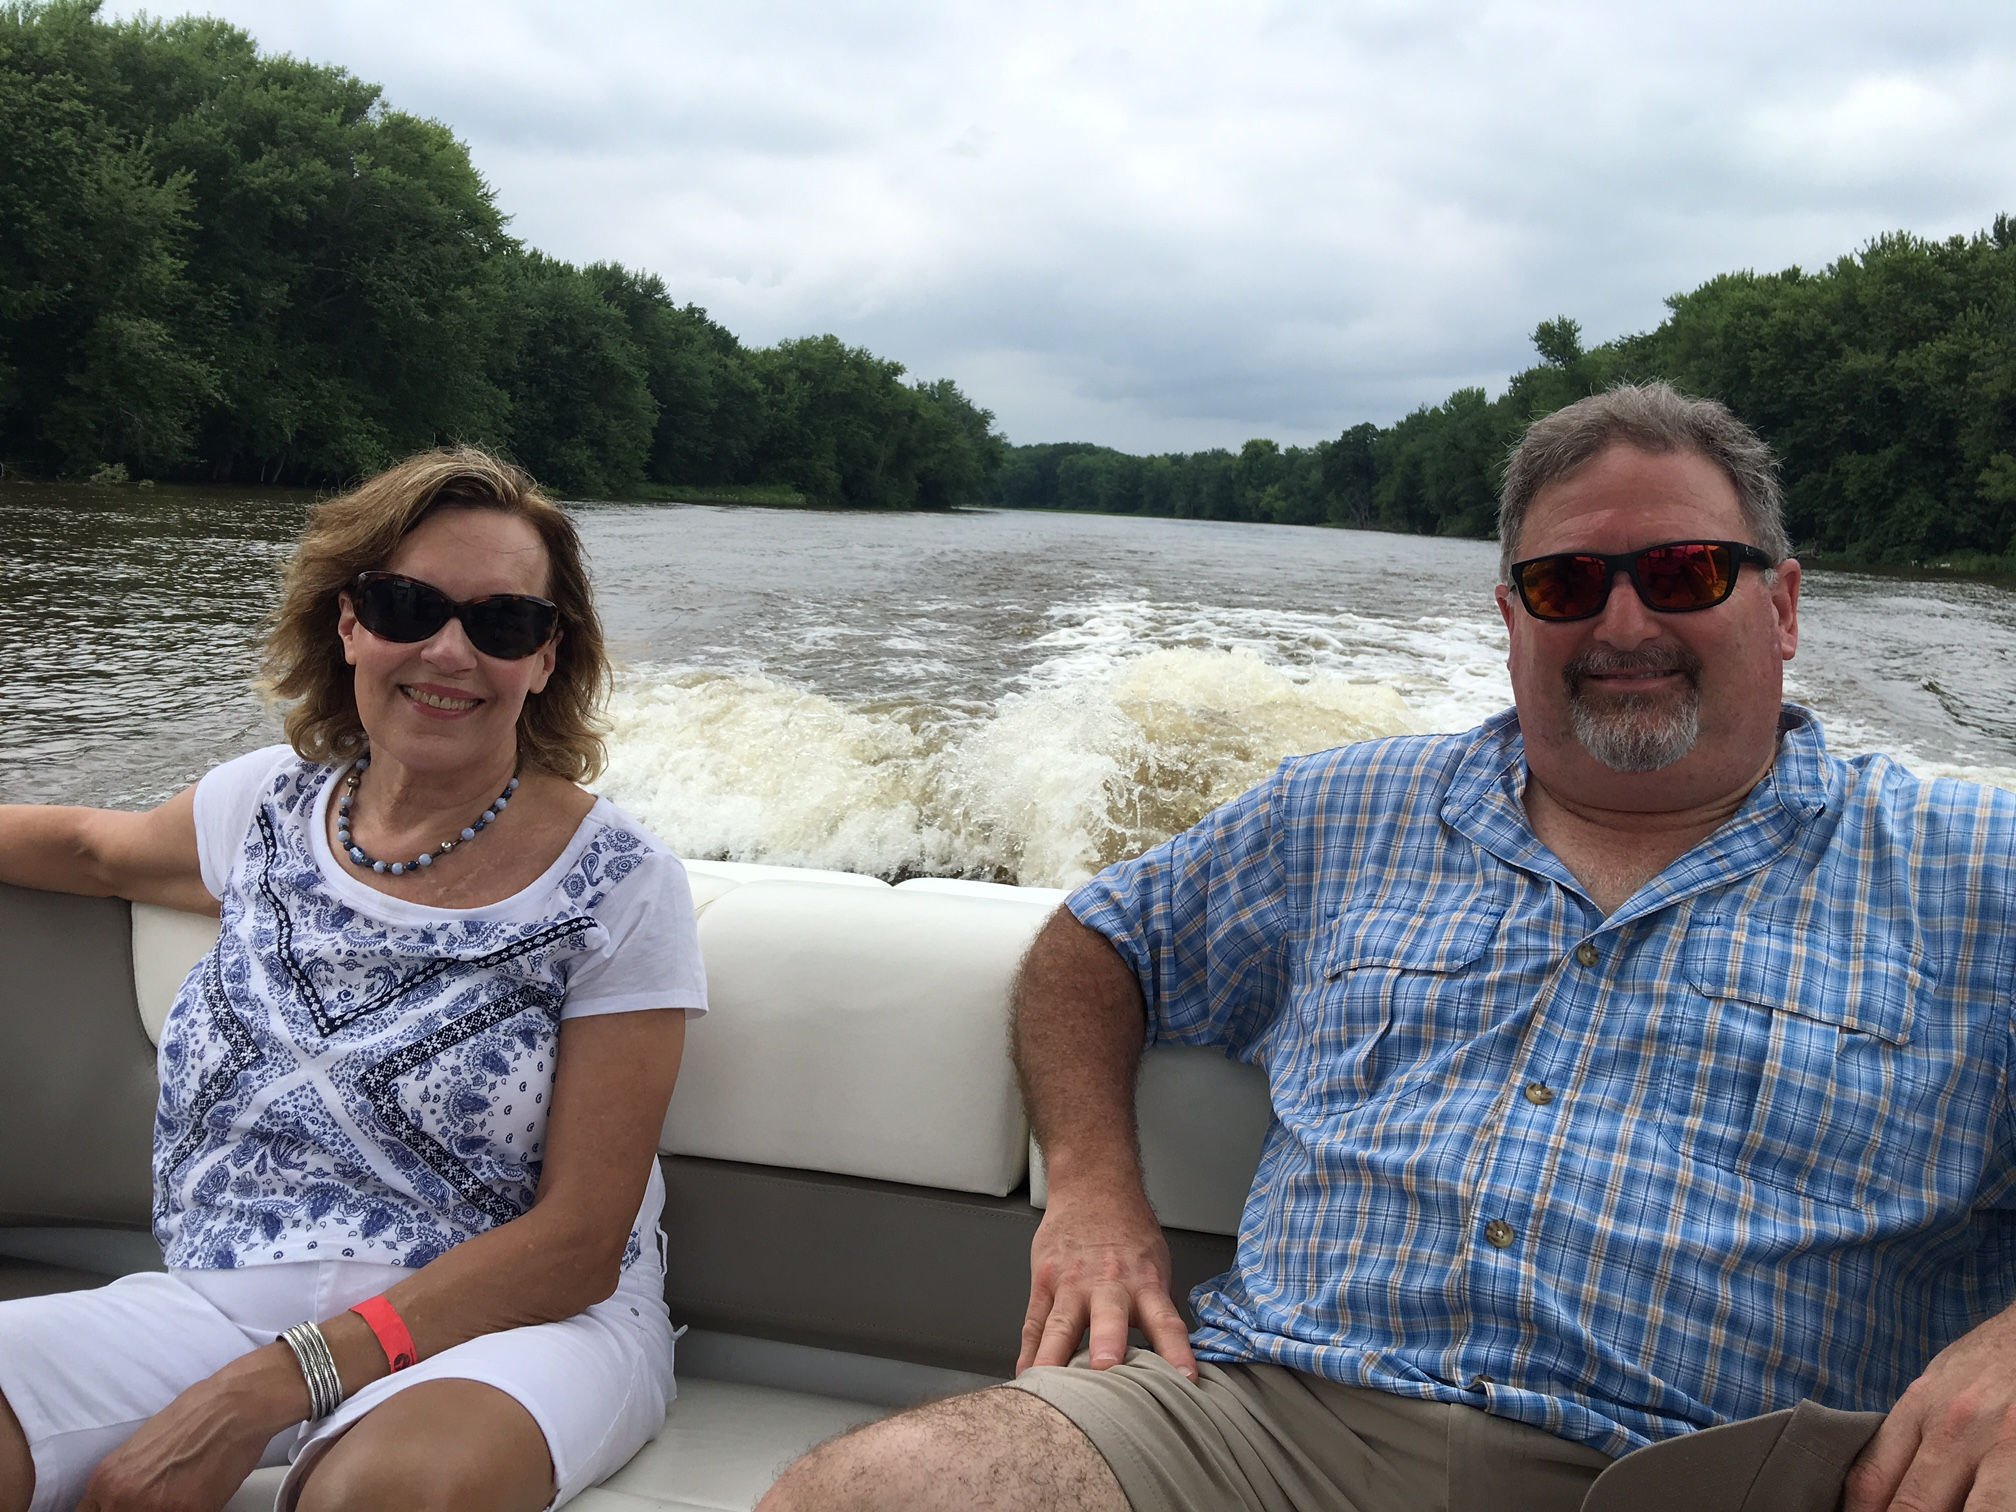 Lorraine Gudas and Keith Elinson enjoy the view from the back of the boat.